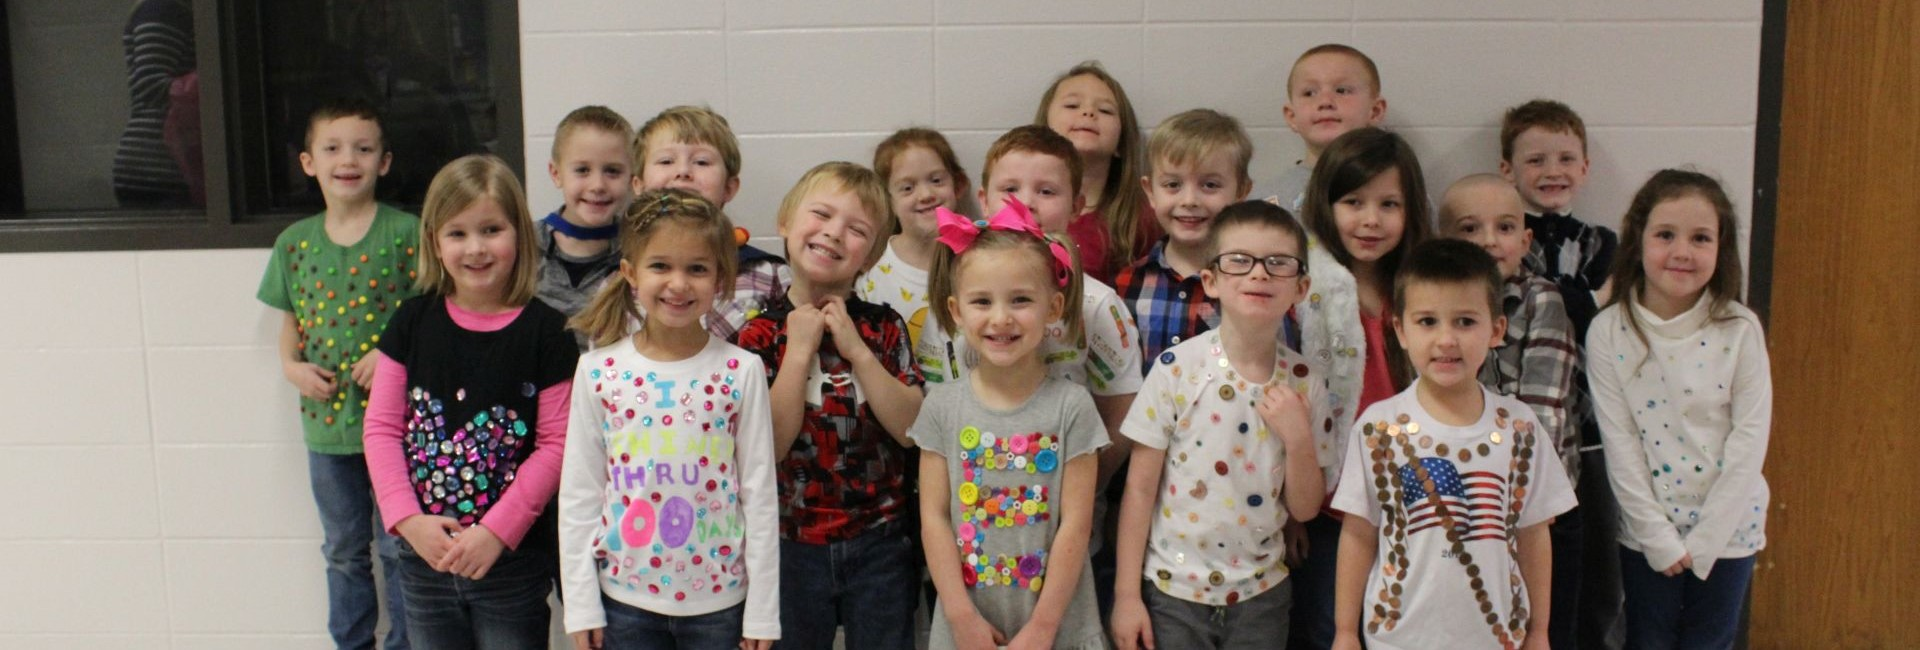 Mrs. Wheeler's class showing off their 100th Day Fashion Show attire.